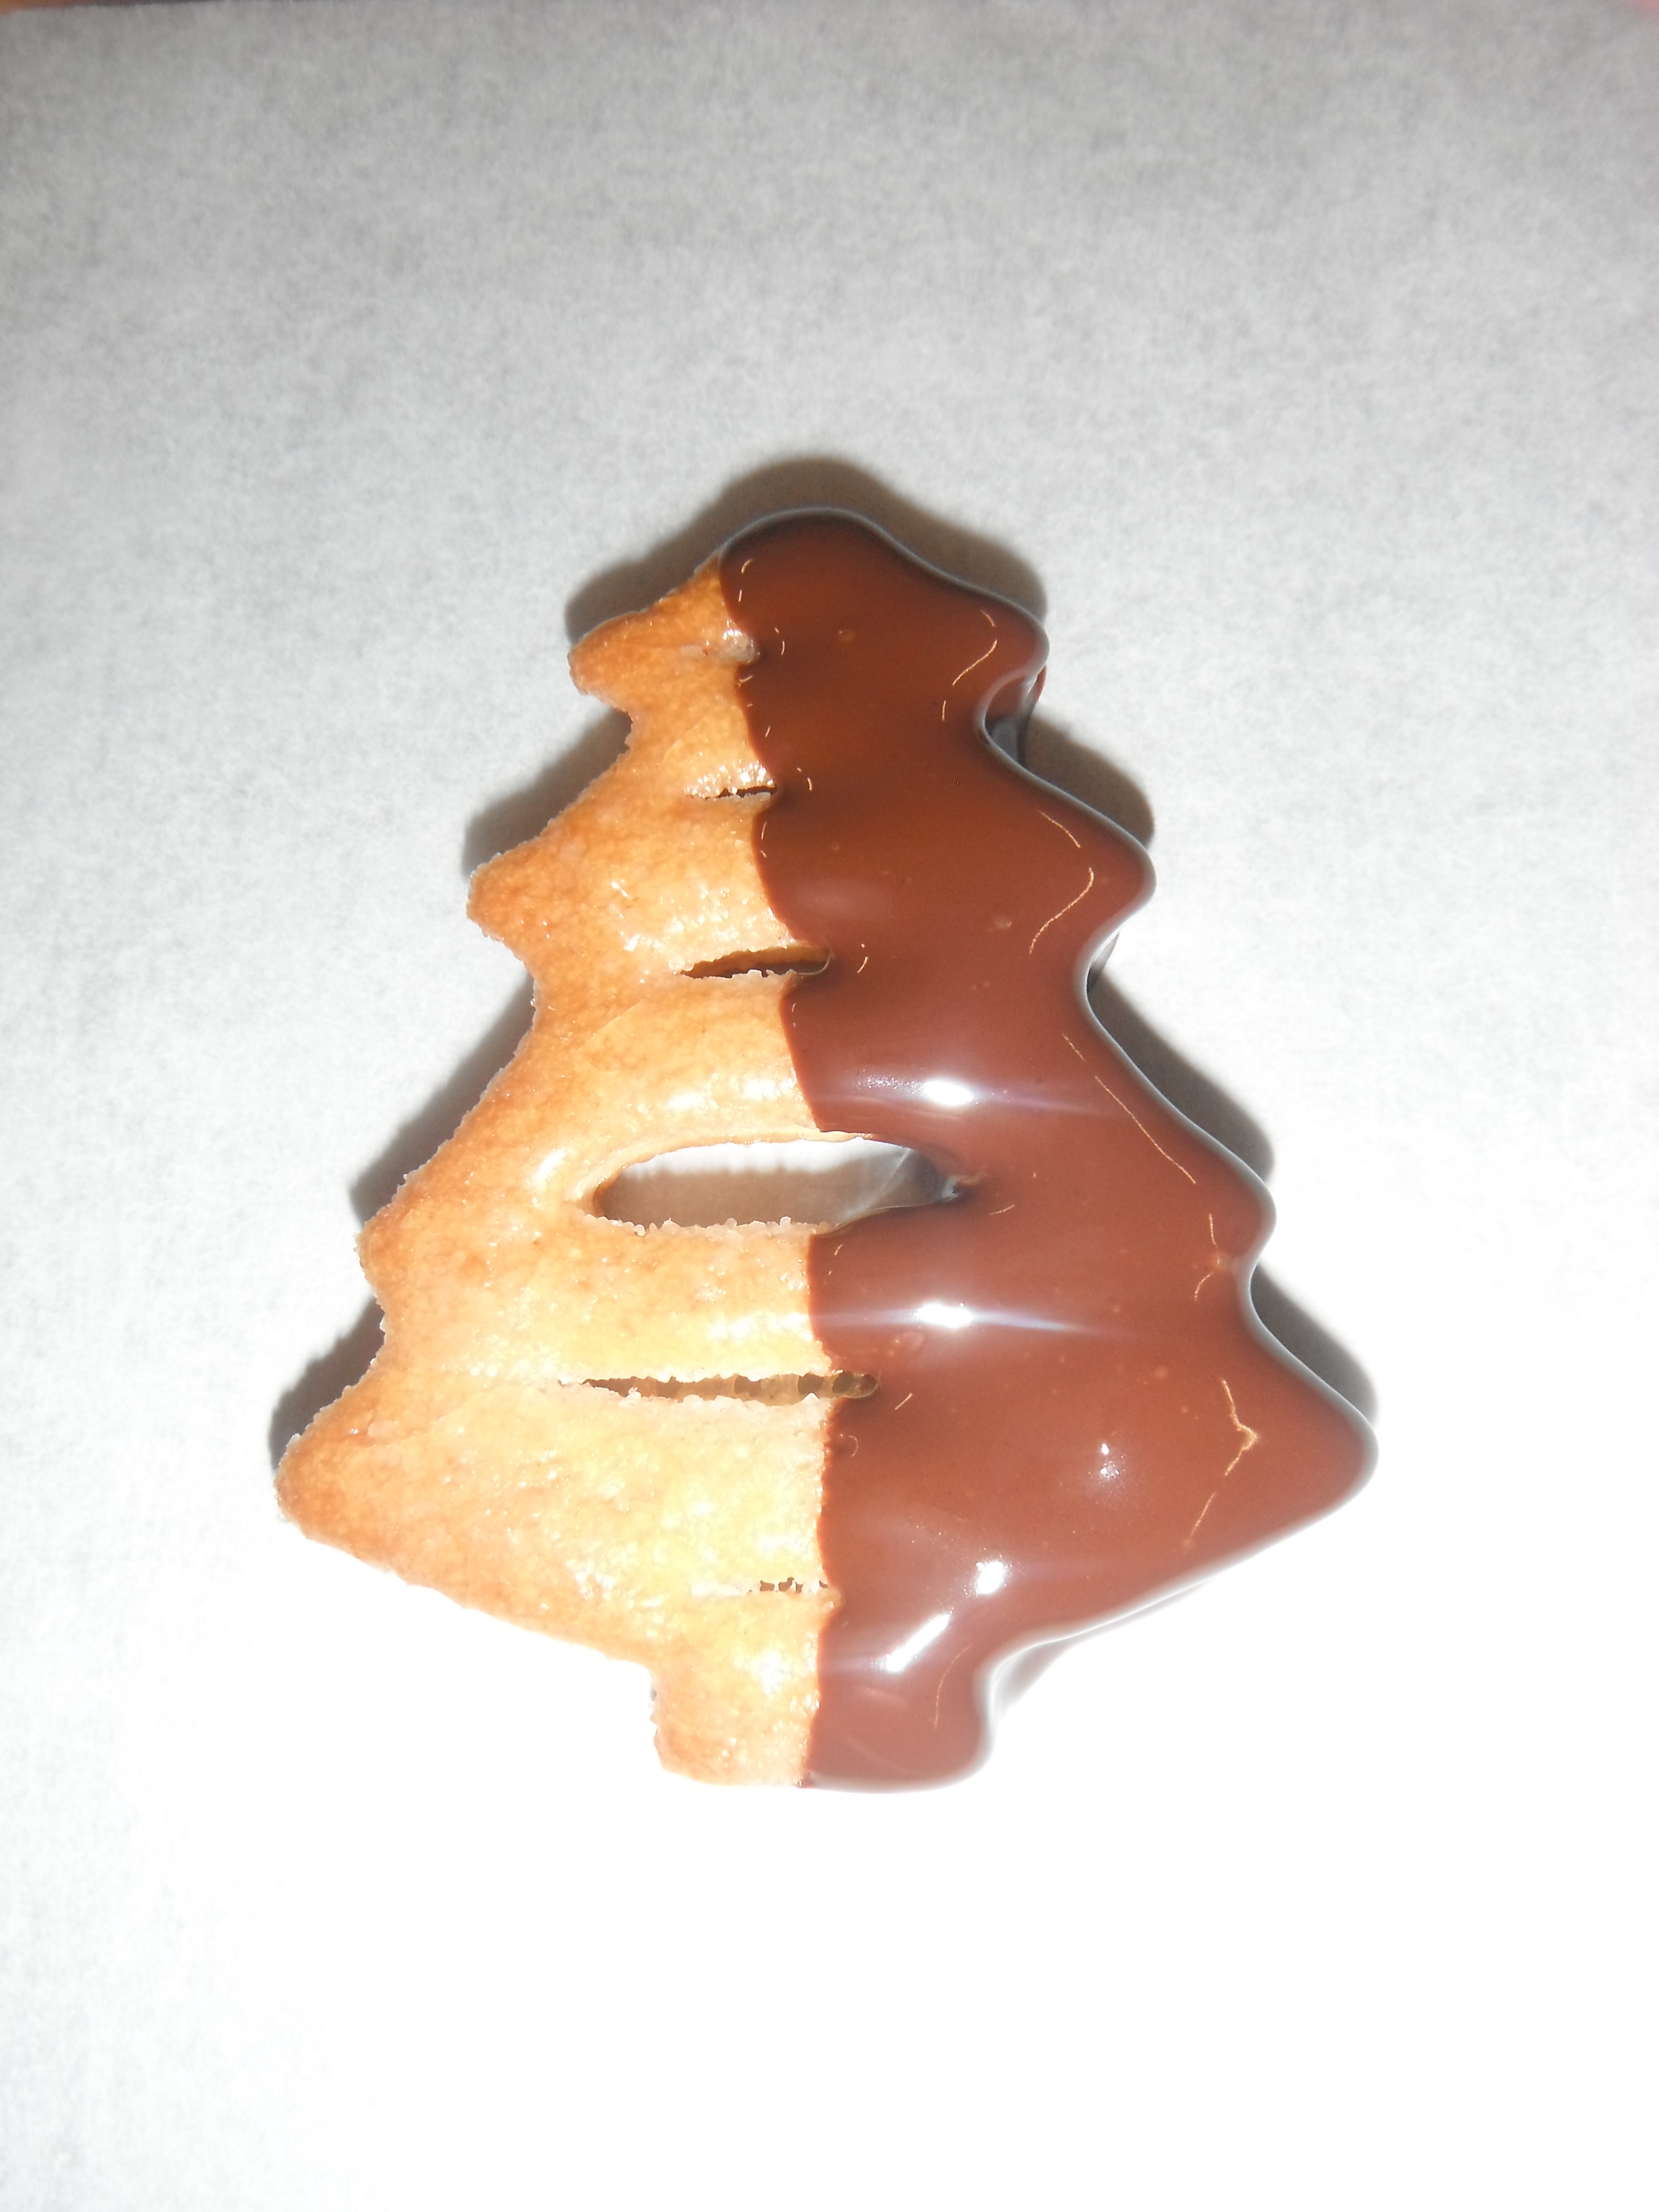 Christmas tree biscuit decorating thanks to asda and leiths place a few of the cookies in a clear cellophane presentation bag and secure with some christmas ribbon the decorated biscuits make a nice gift or solutioingenieria Gallery